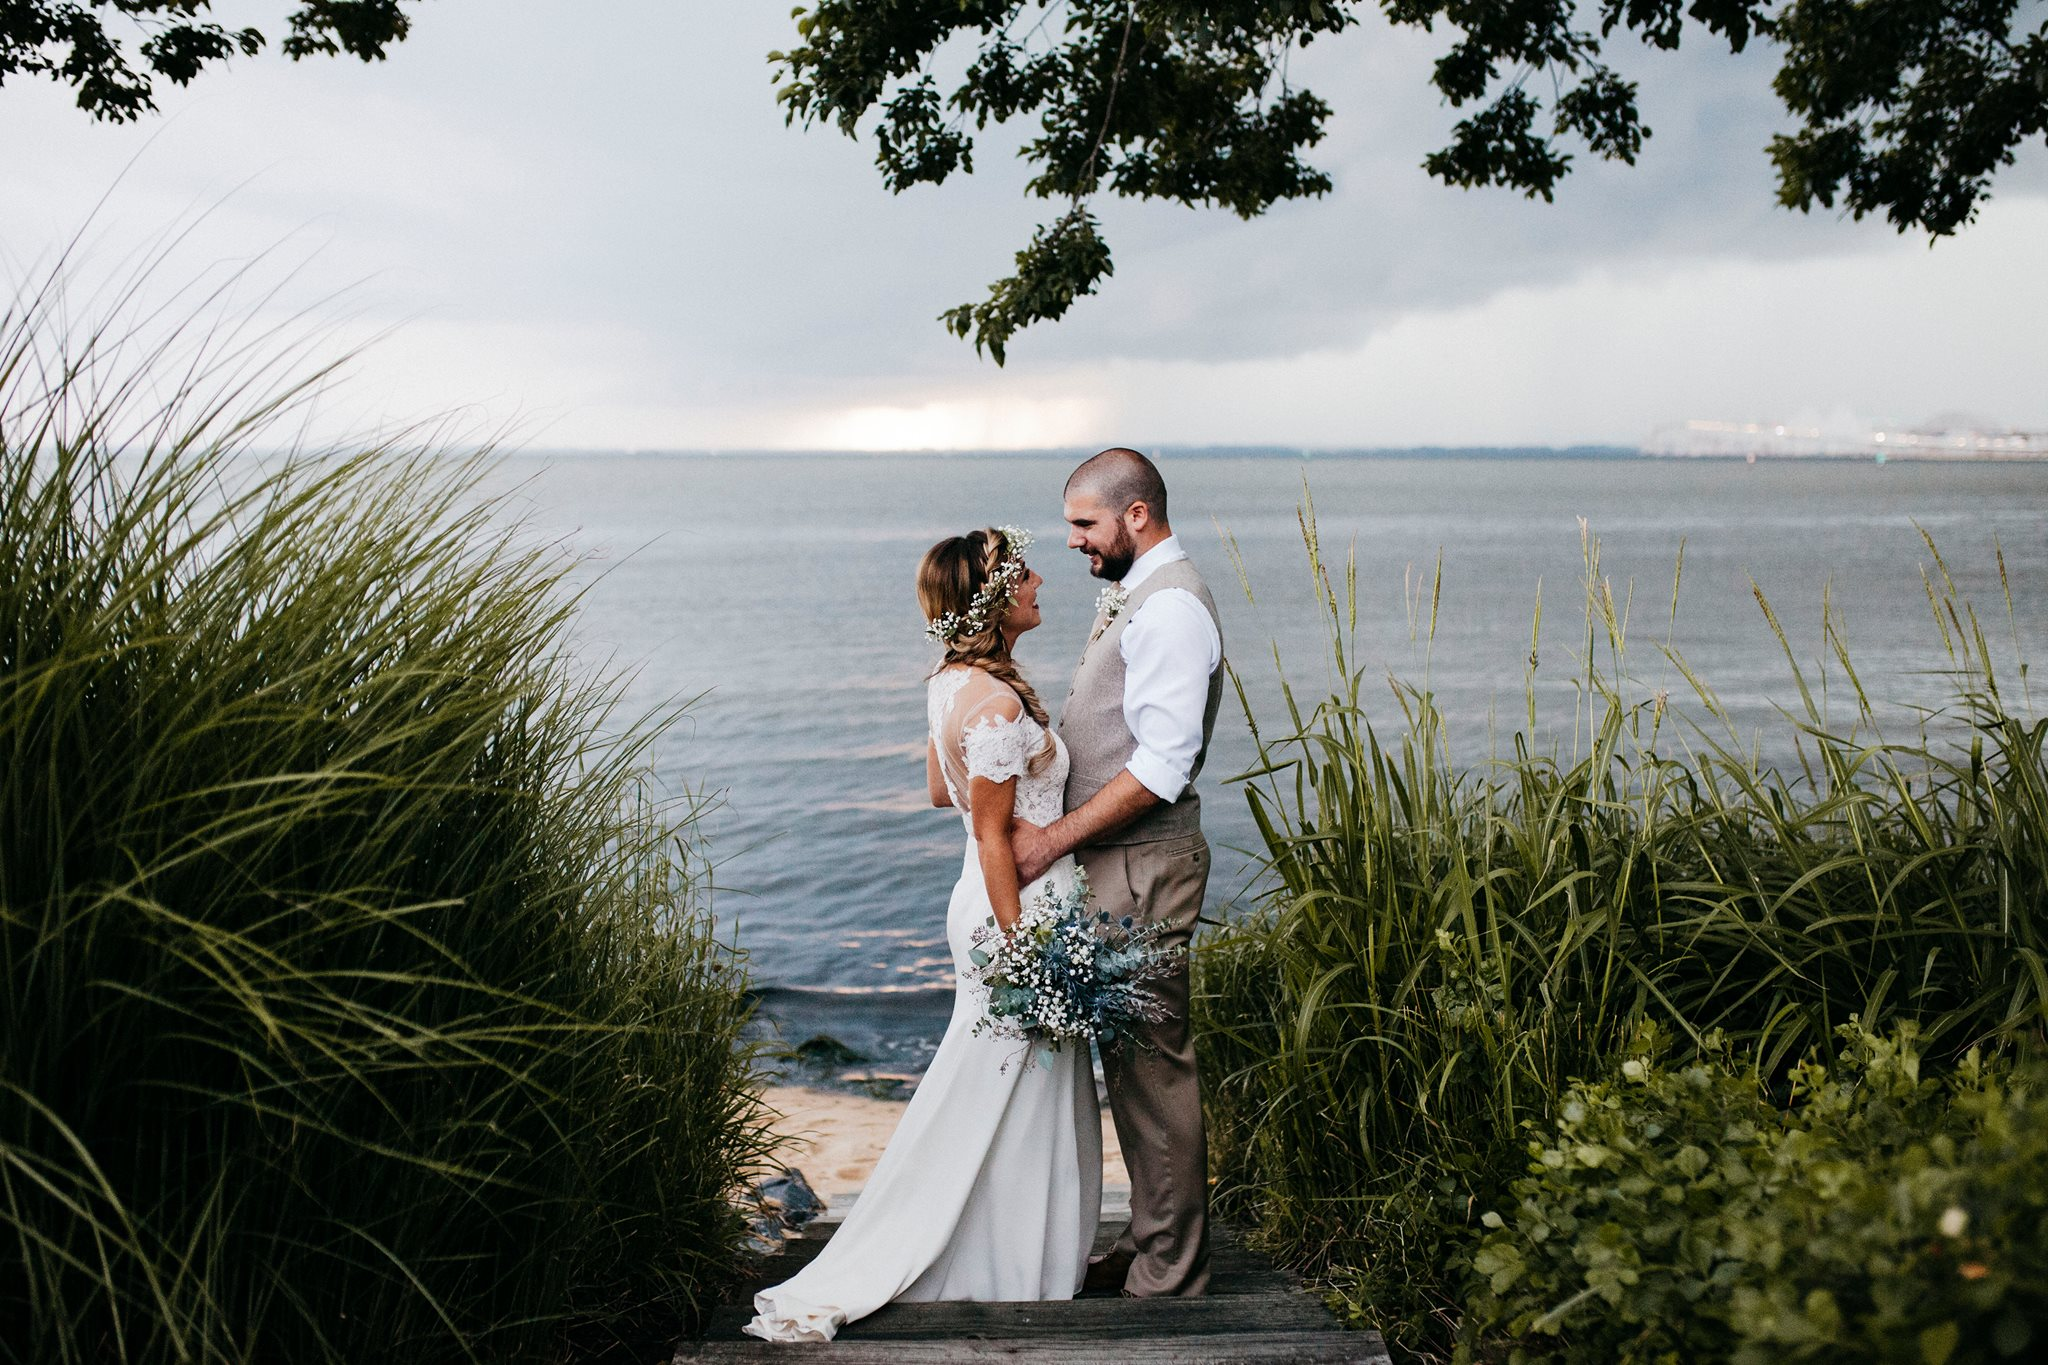 The Chesapeake Bay Beach Club  - what a stunning venue this is! It has beautiful views of the water, a private beach and a gorgeous reception hall.